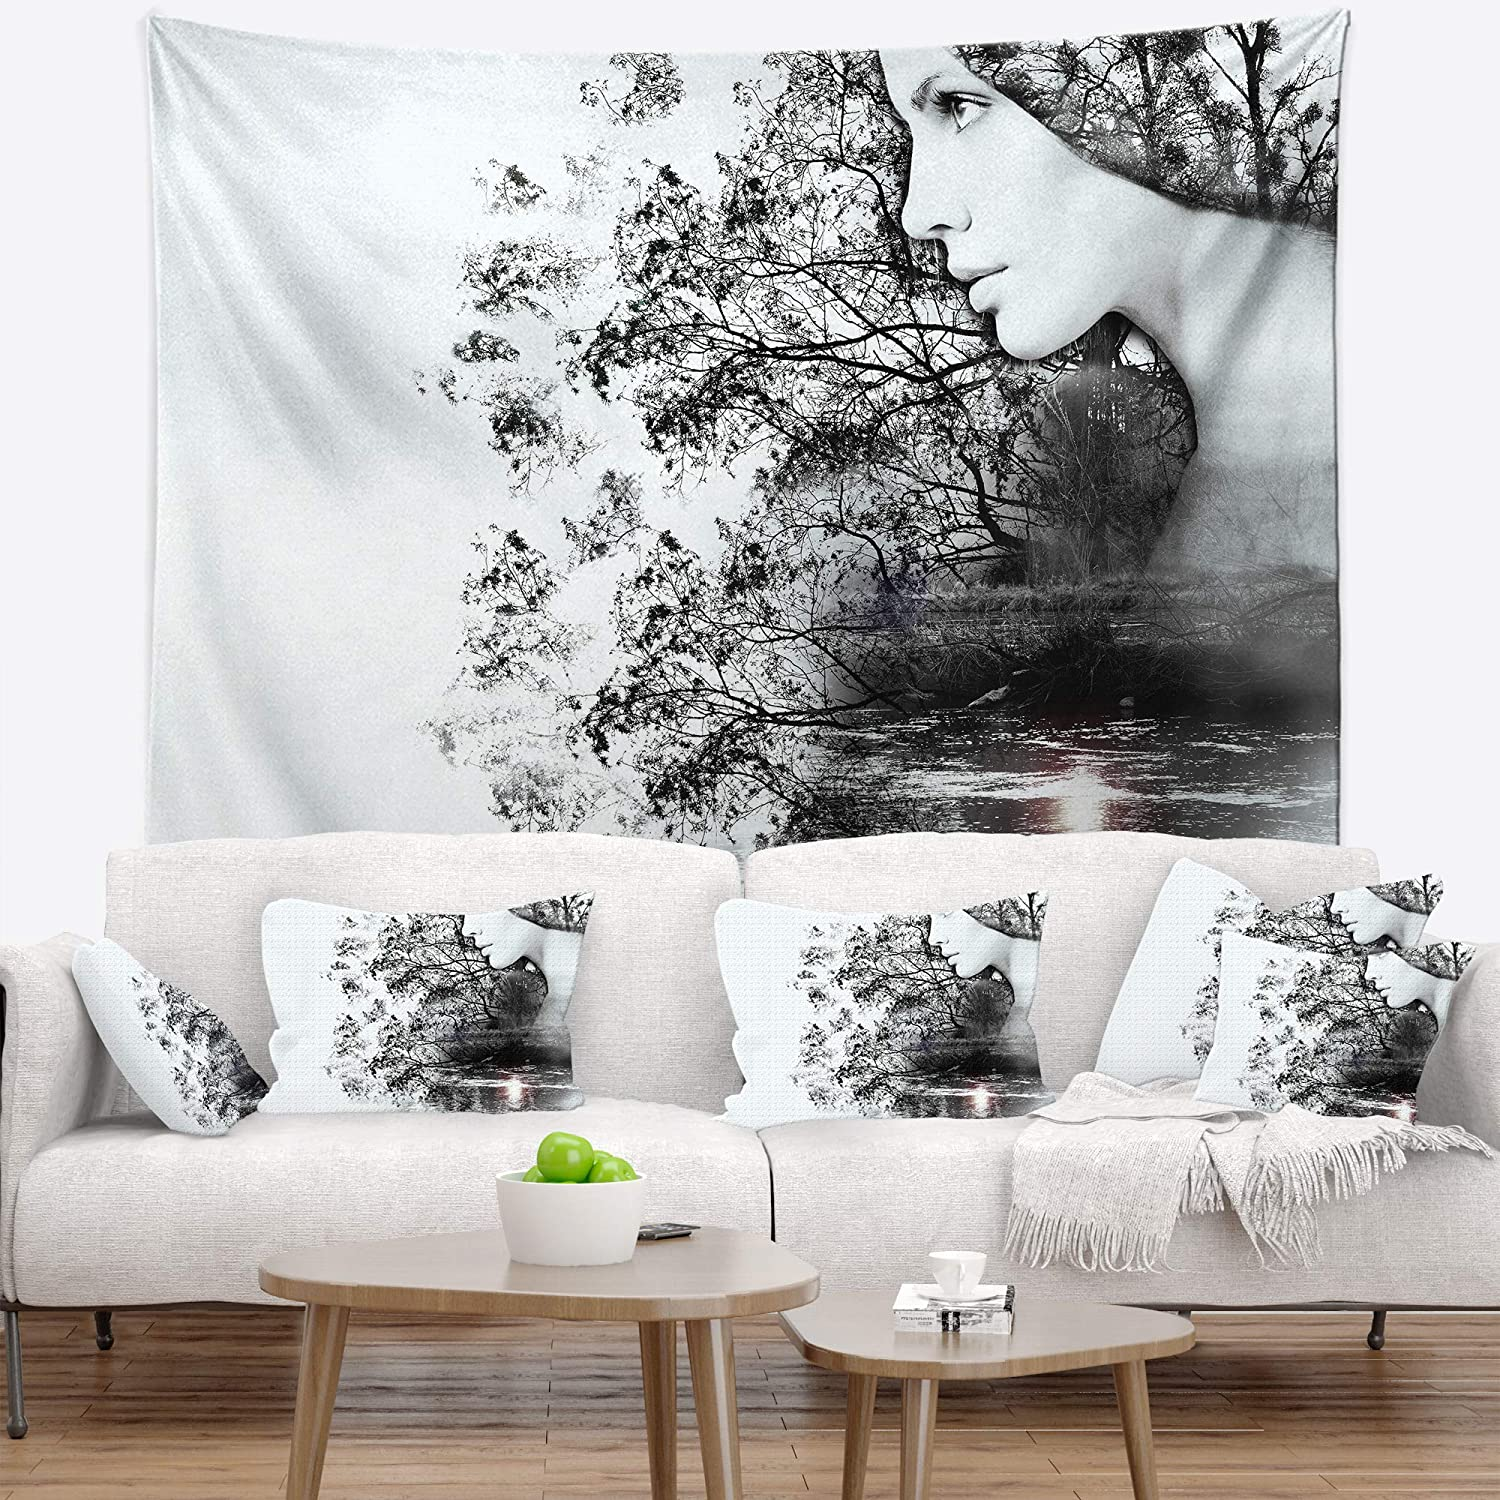 Designart TAP14316-80-68 ' Woman and Beauty of Nature' Landscape Blanket Décor Art for Home and Office Wall Tapestry x Large: 80 in. x 68 in. Created On Lightweight Polyester Fabric